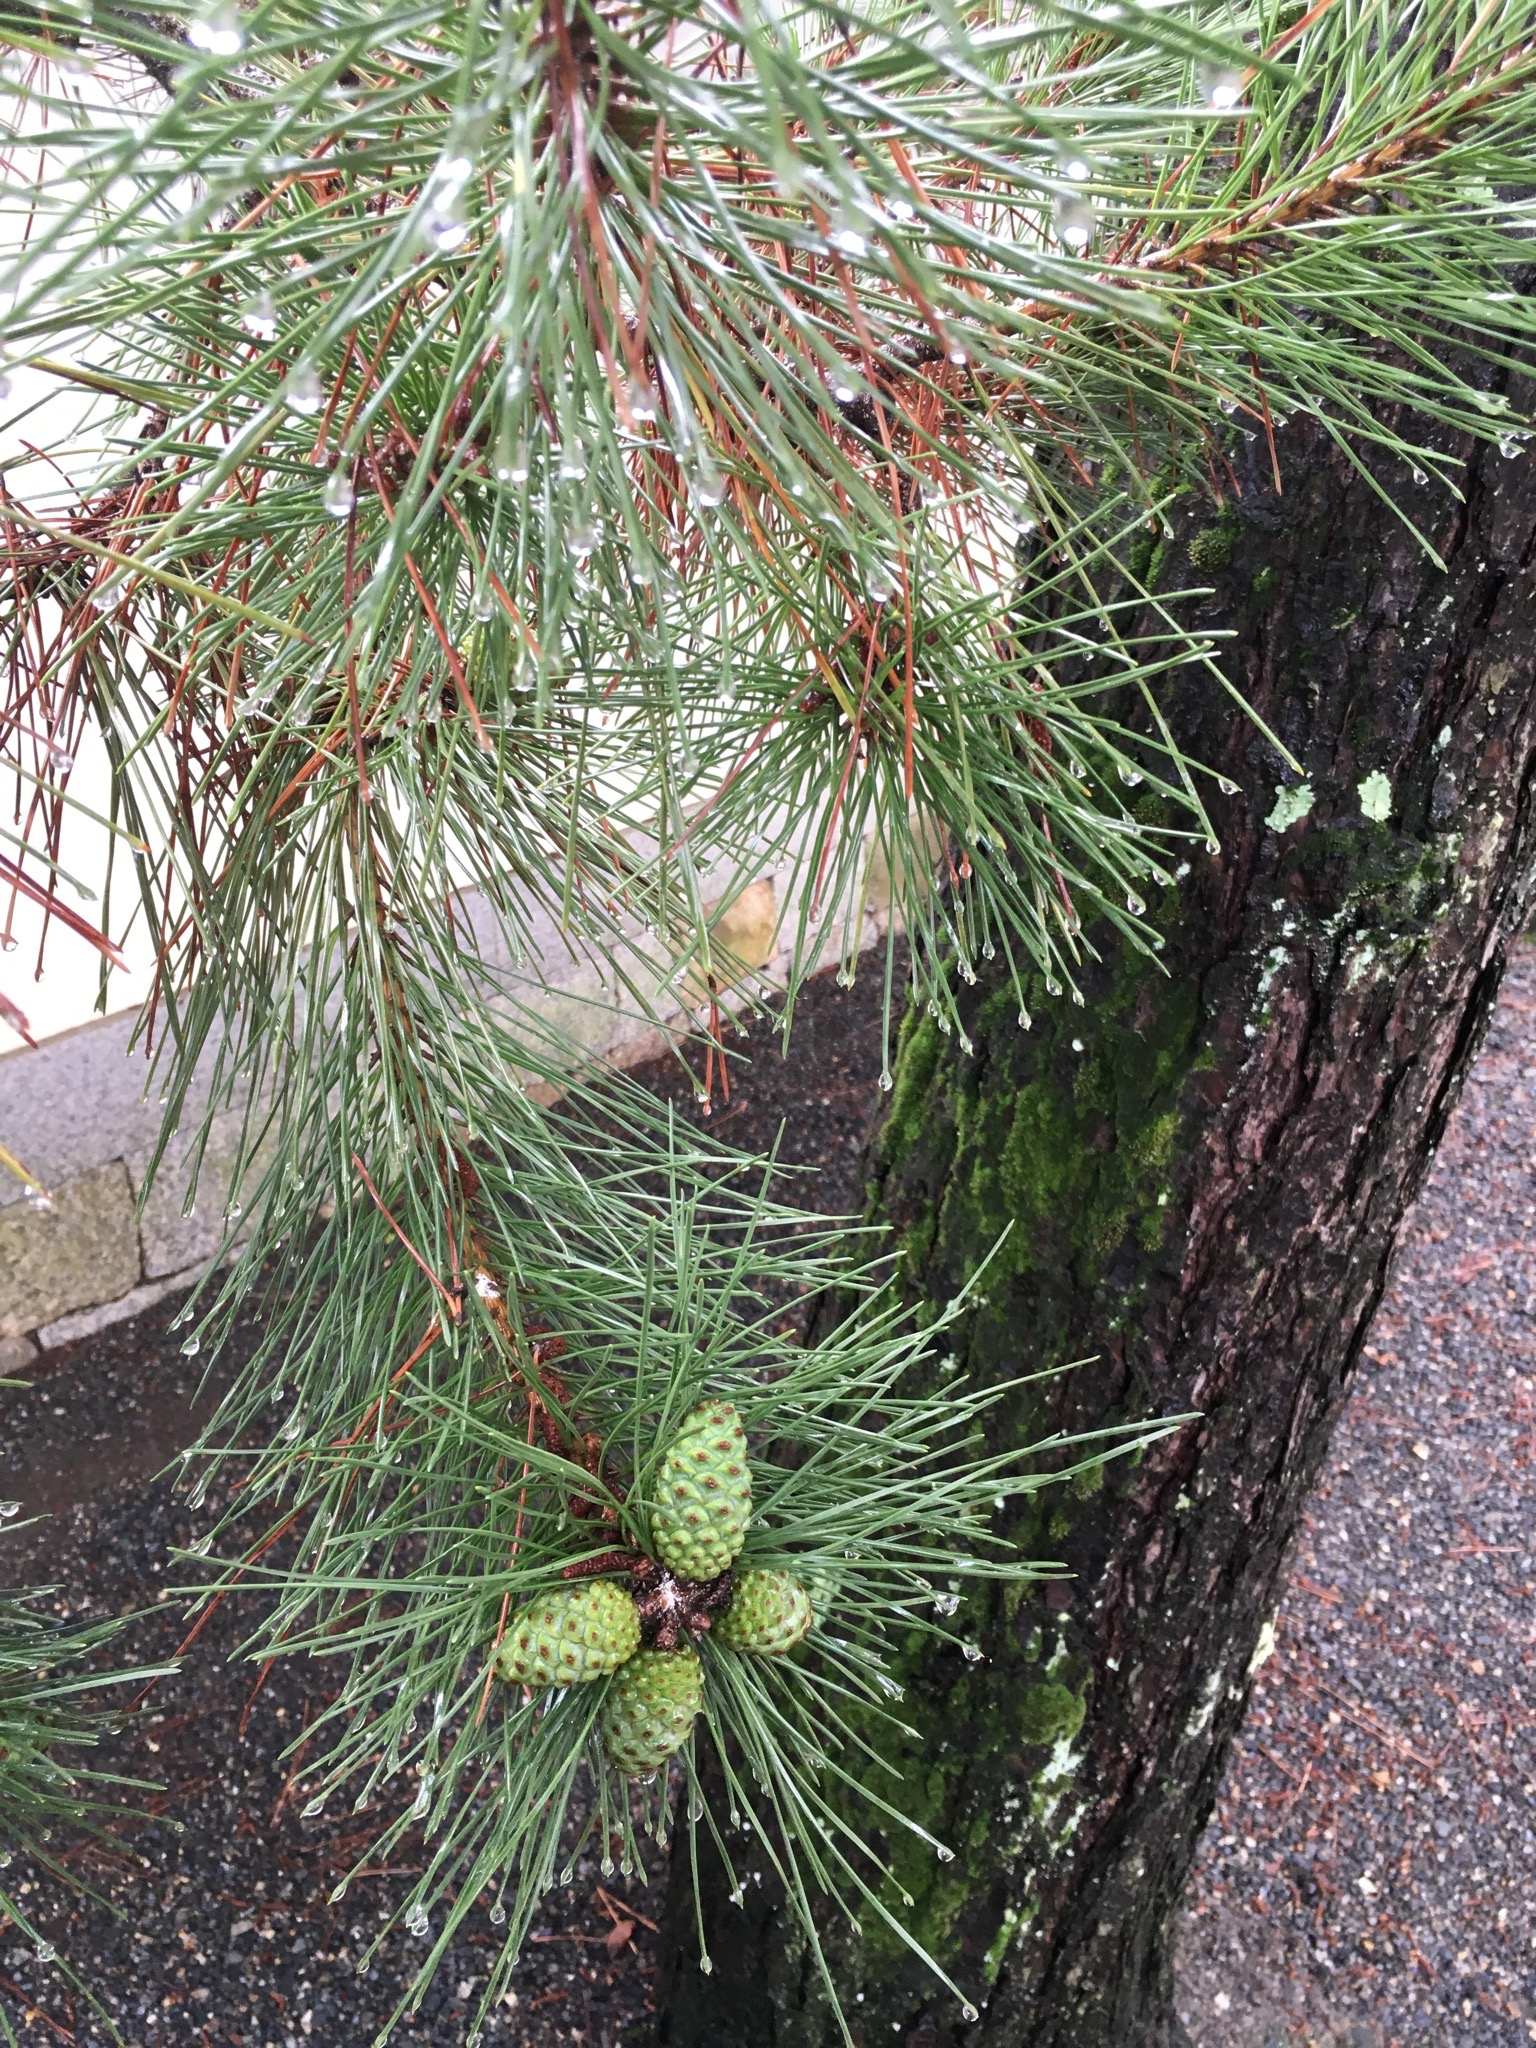 Jewel-like water droplets on the end of pine needles at Myoshin-ji Temple, soon after rain. Also taken on the morning of June 23rd.